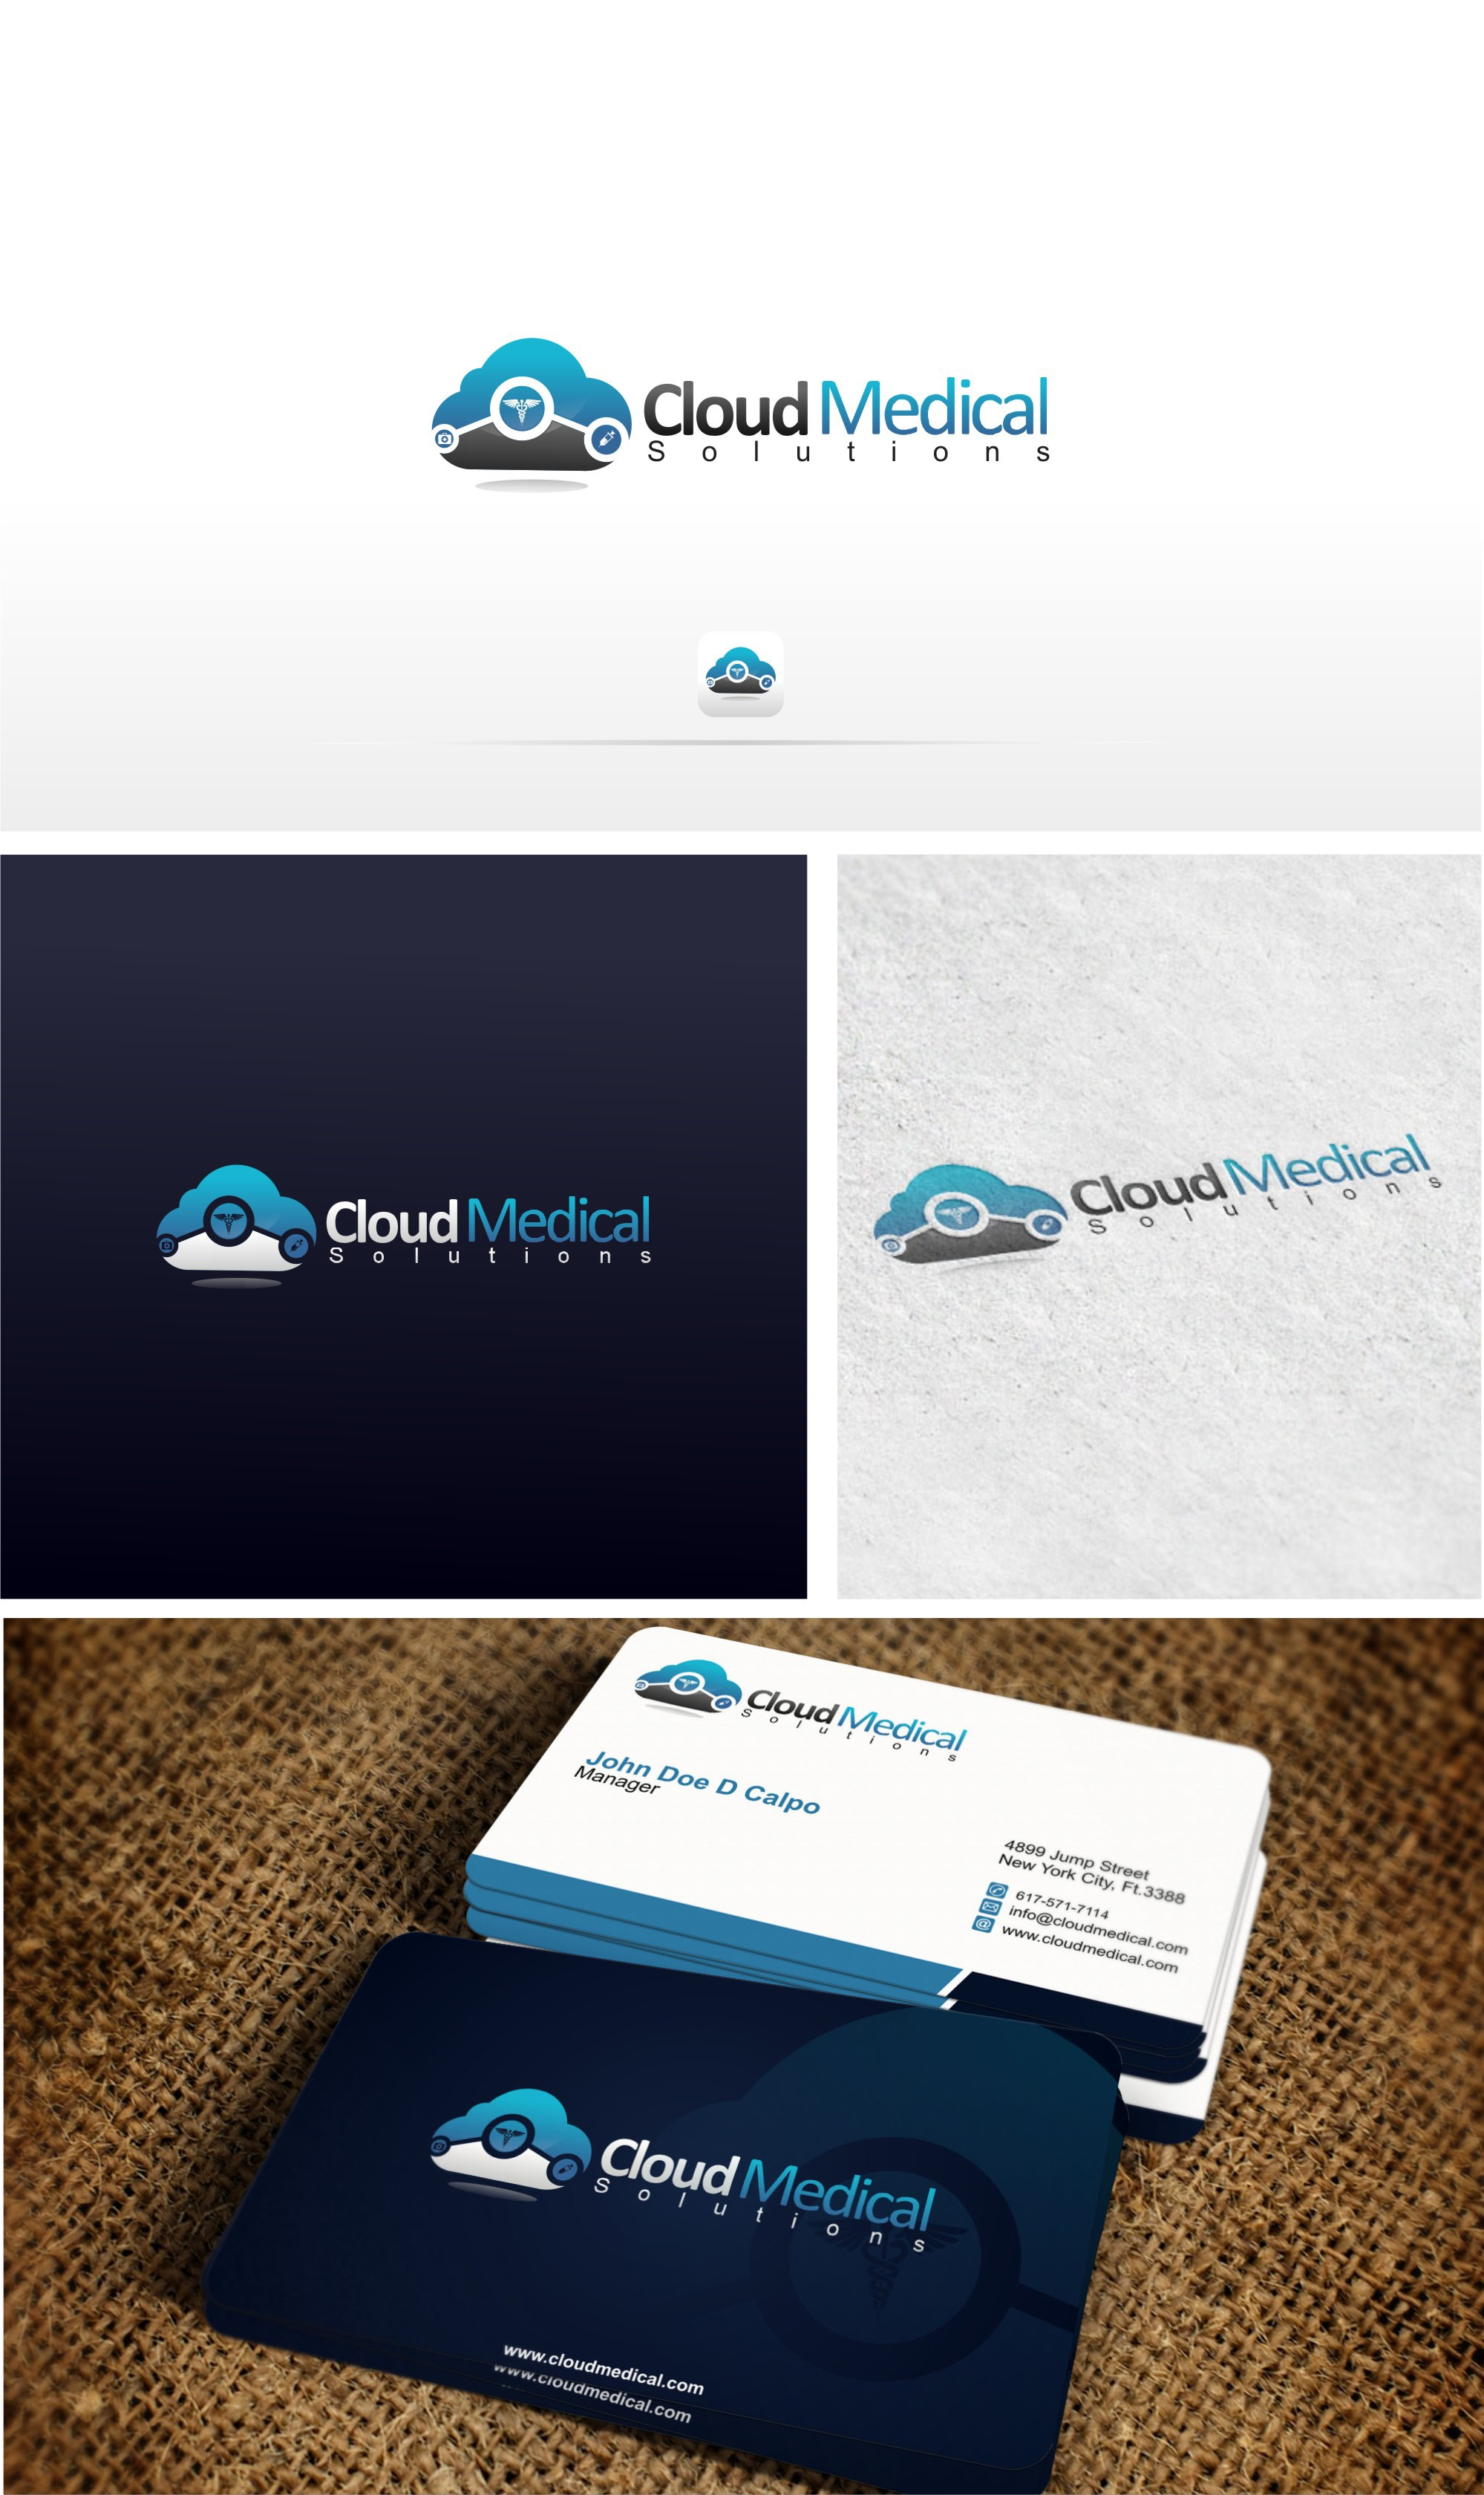 Medical Billing and Coding Company Cloud Incorporated into Logo